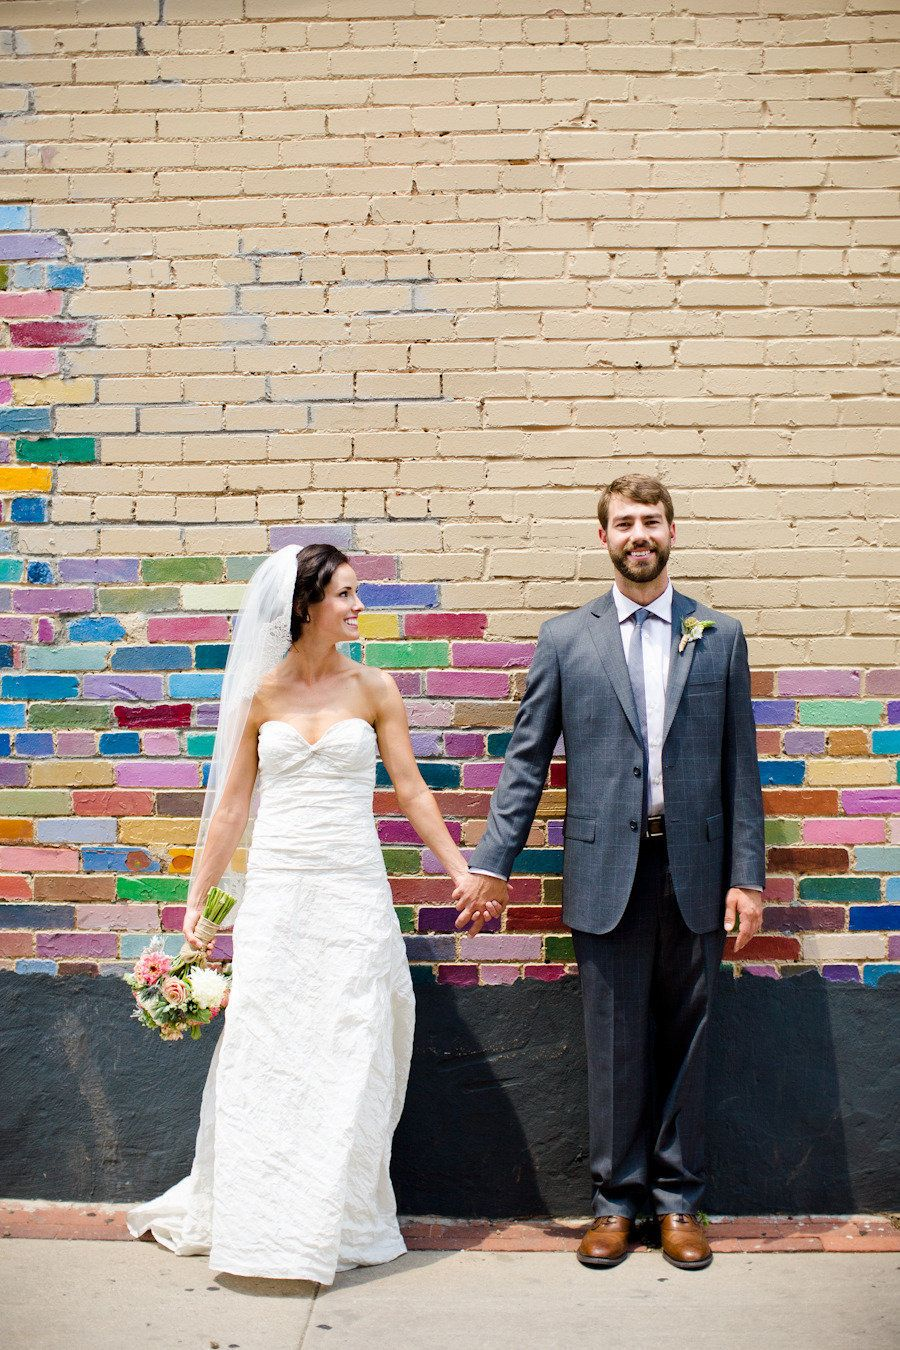 Boulder wedding from angie wilson photography floral designs